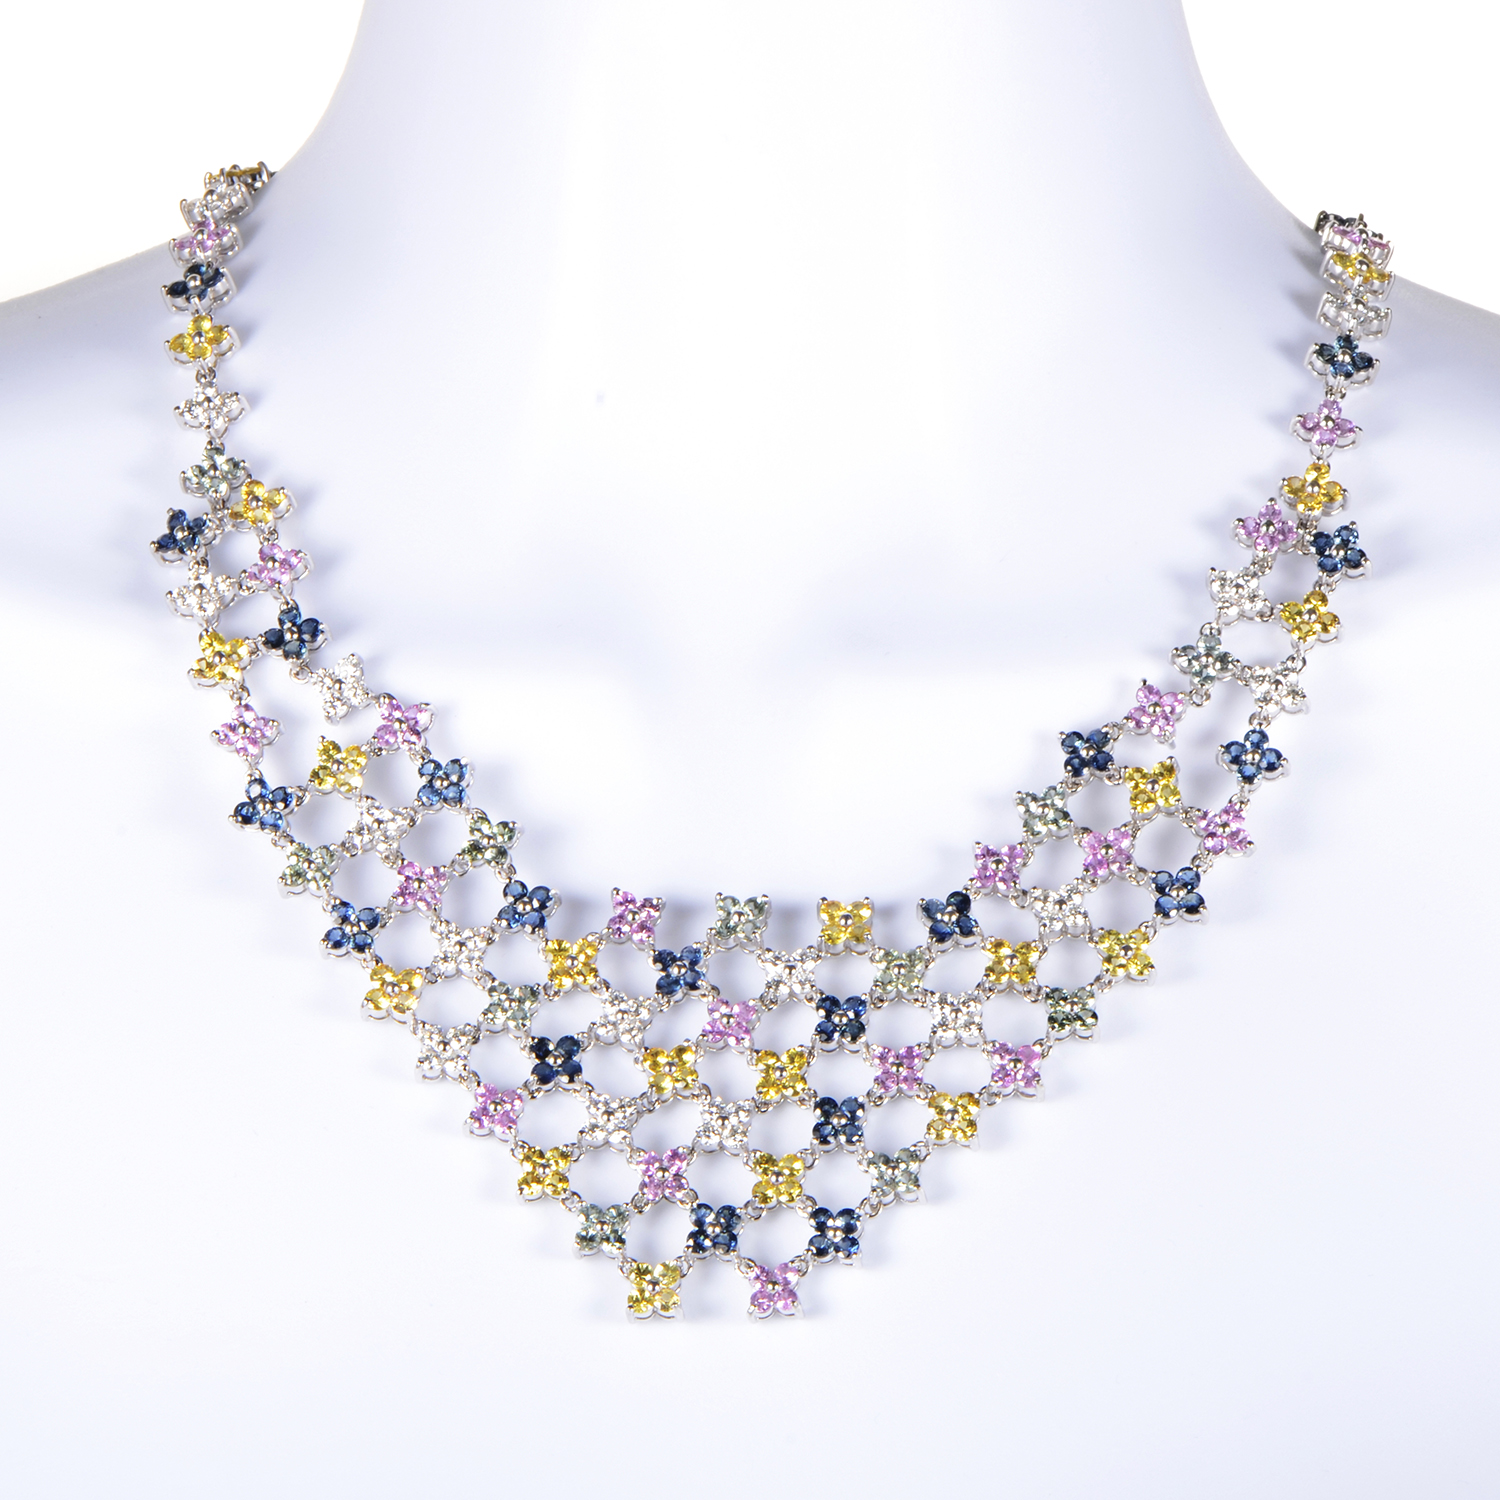 Women's 18K White Gold Diamond & Multi-Sapphire Bib Necklace